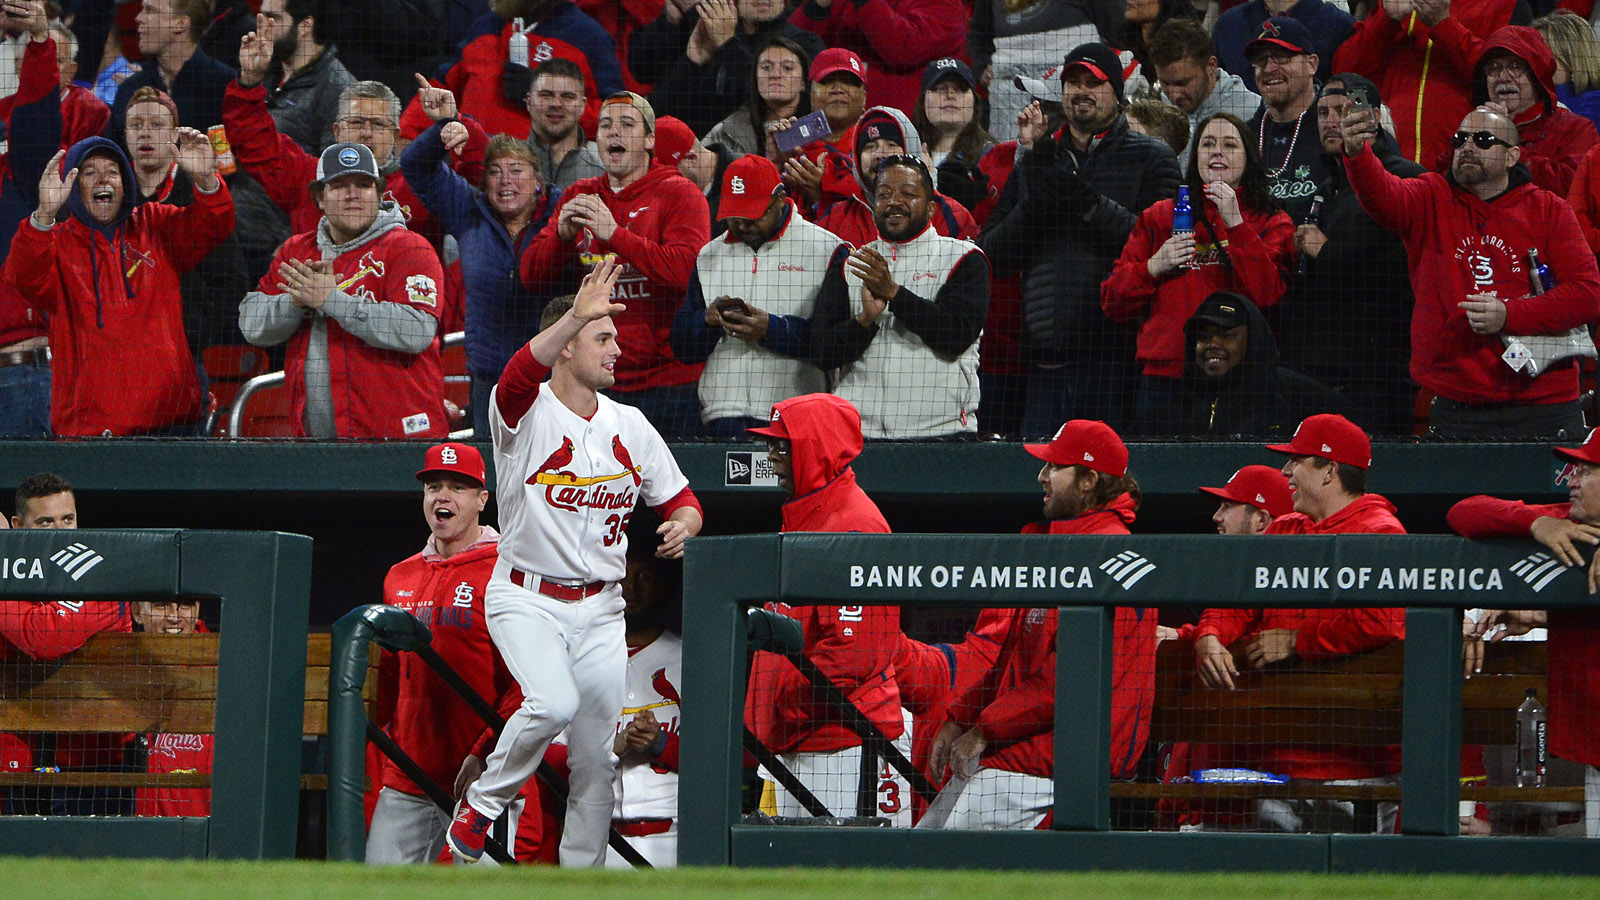 Cards recall Thomas, claim Mejía off waivers from Angels